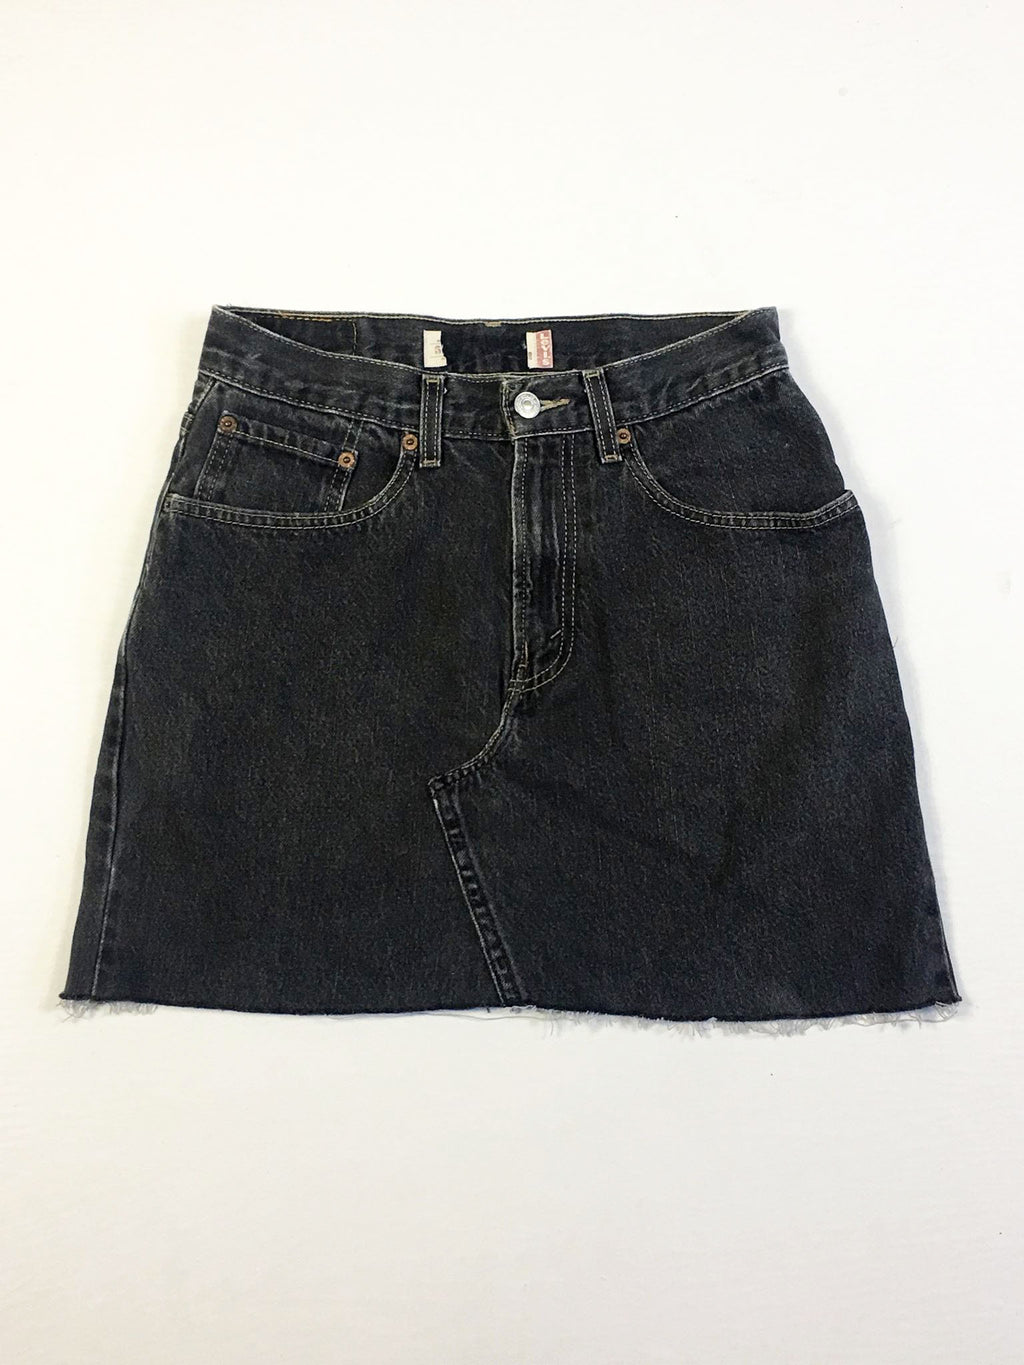 VINTAGE LEVI DENIM SKIRT - STRAIGHT STITCH - BLACK WASH DENIM